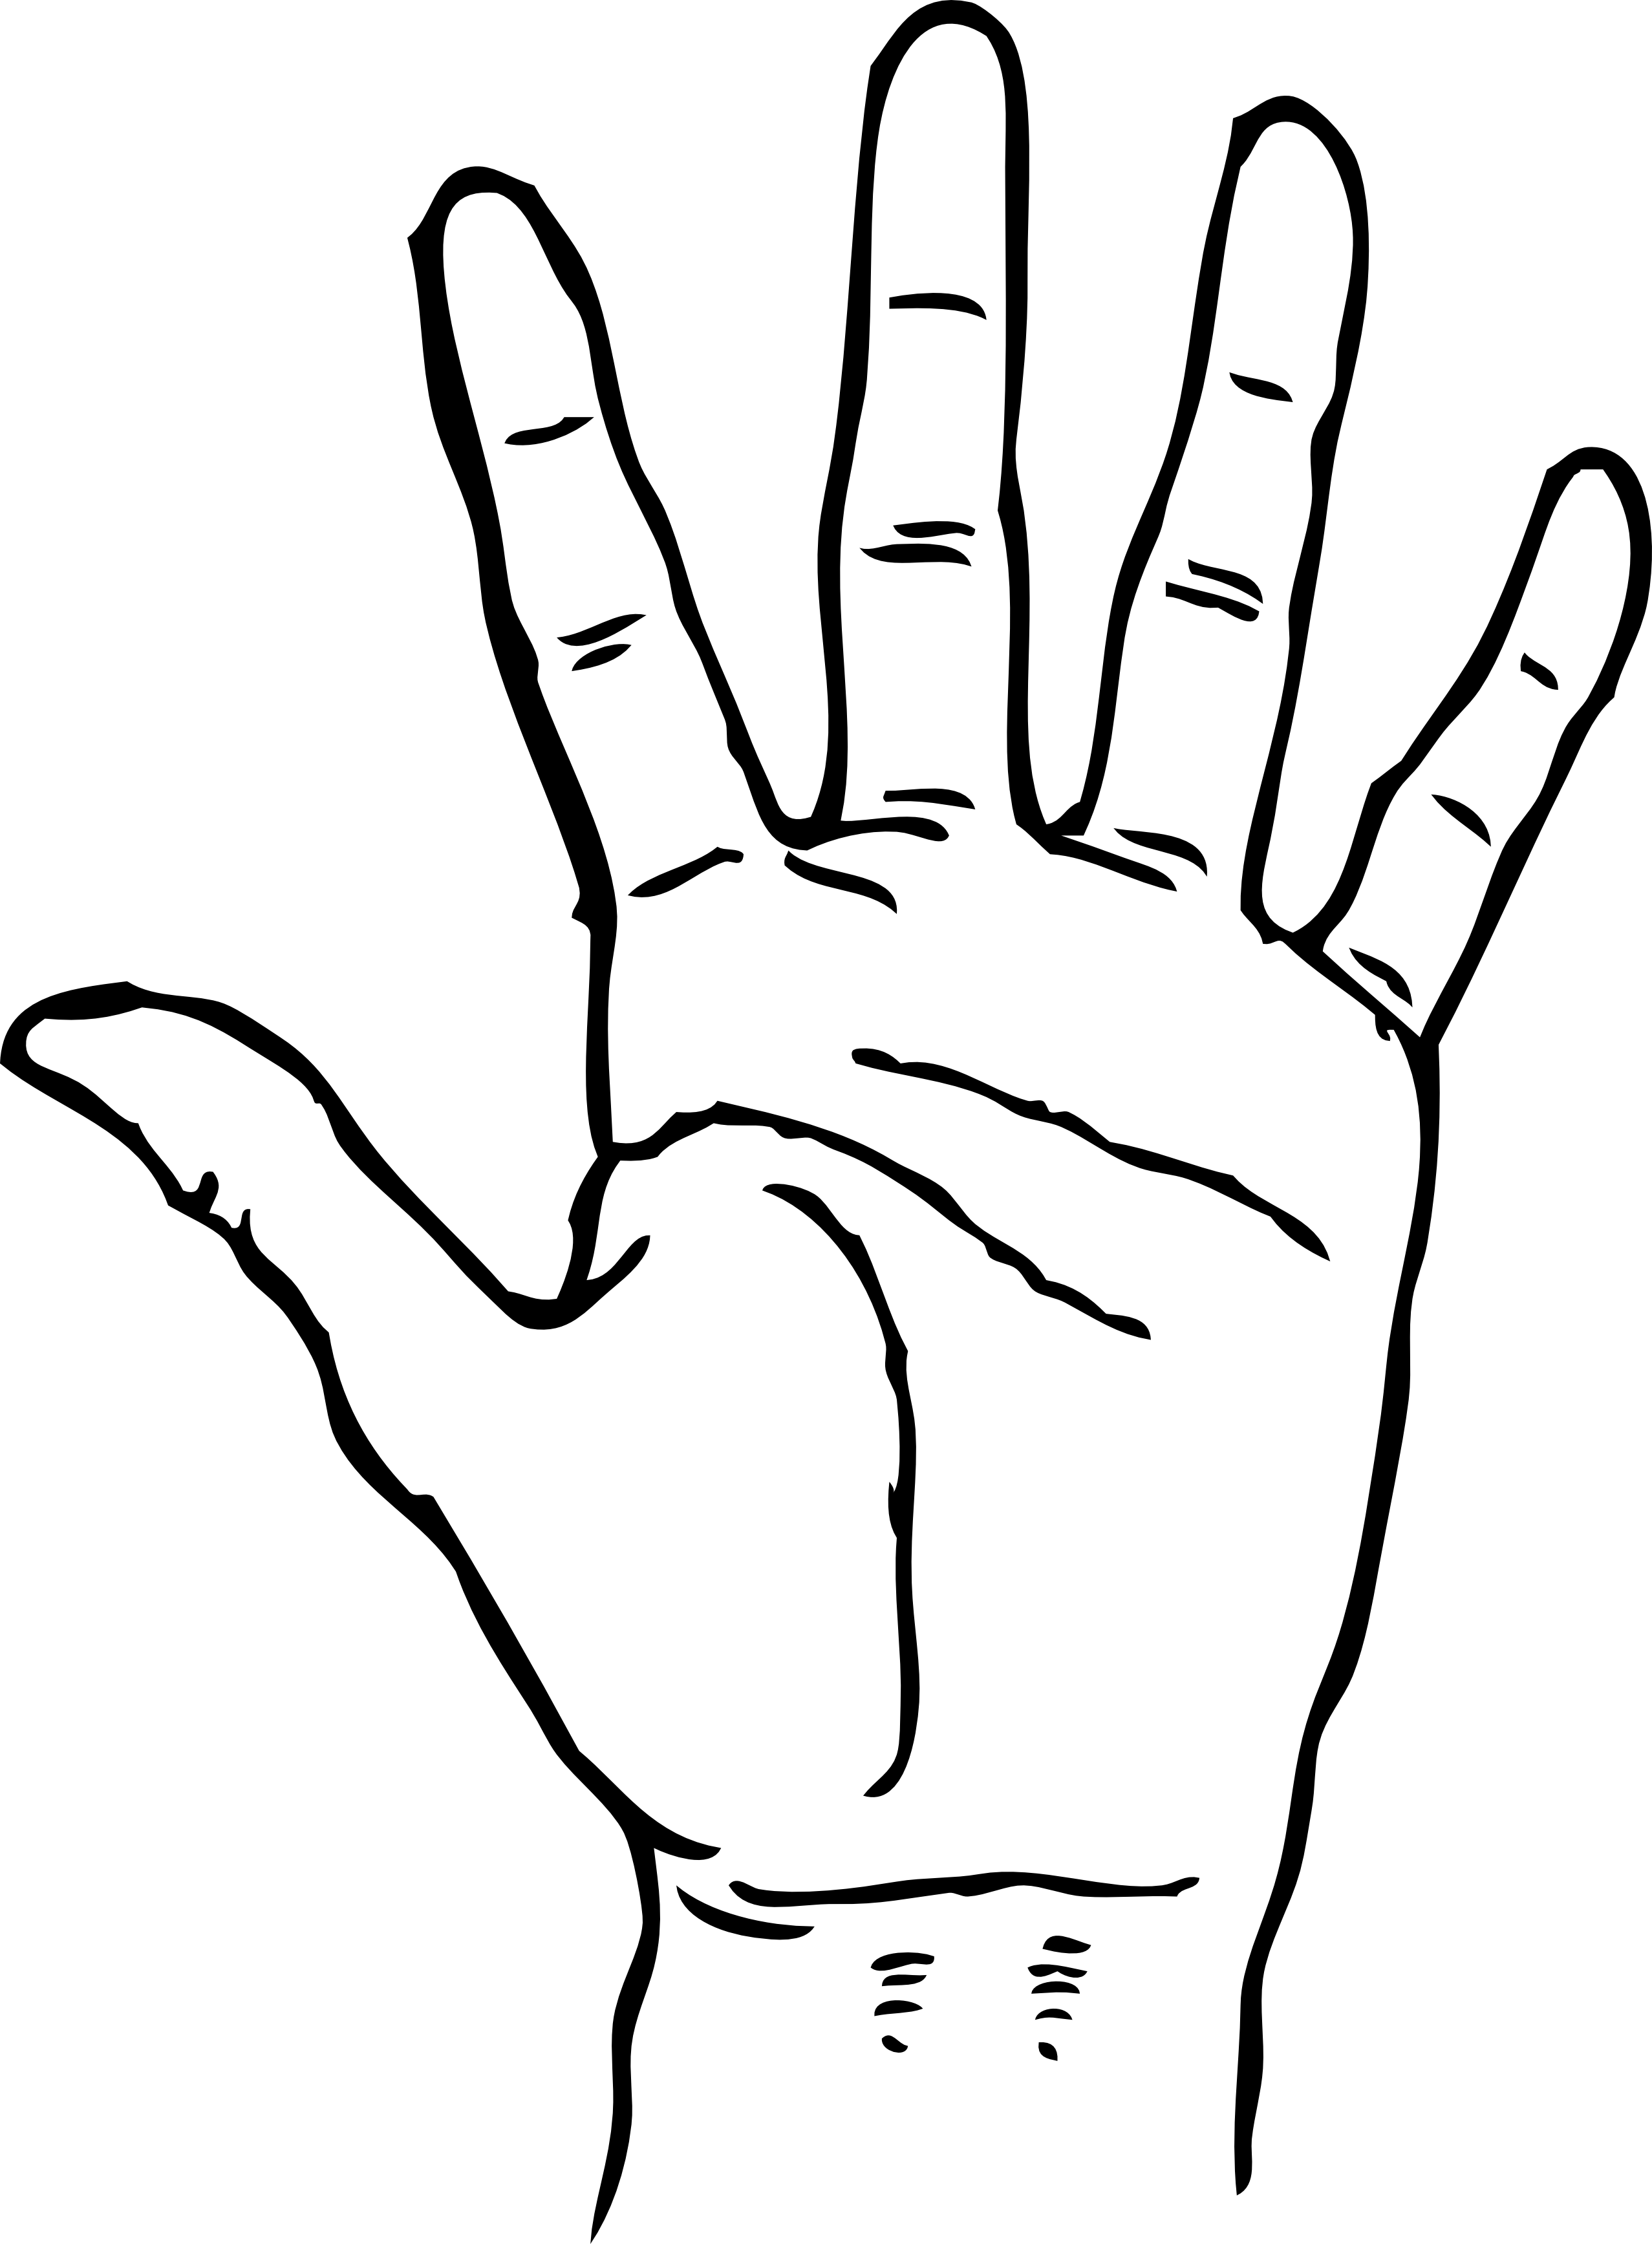 Coloring page group home. Handprint clipart draw